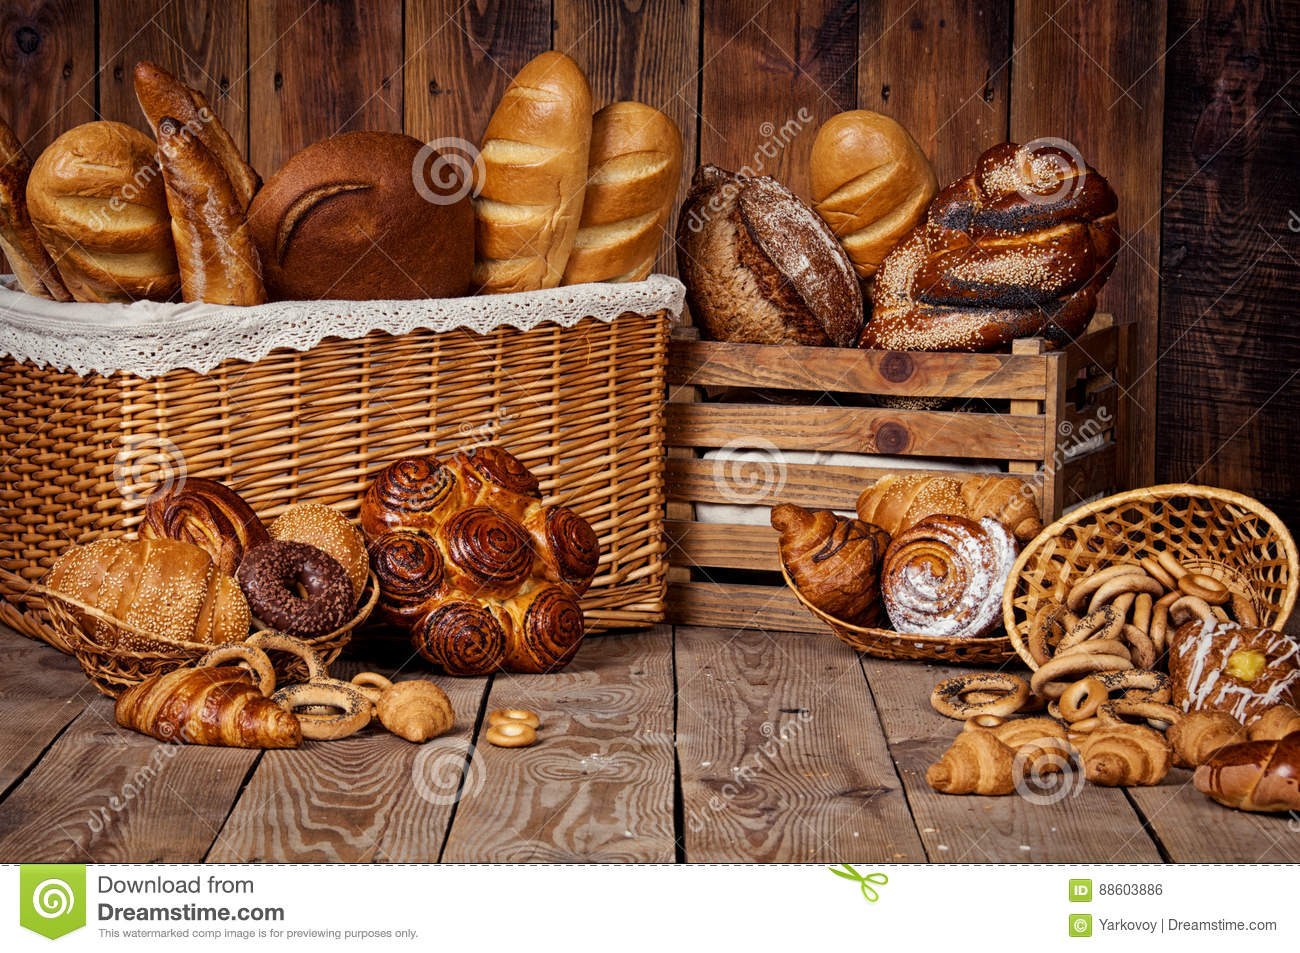 Composition with bread and rolls in wicker basket.